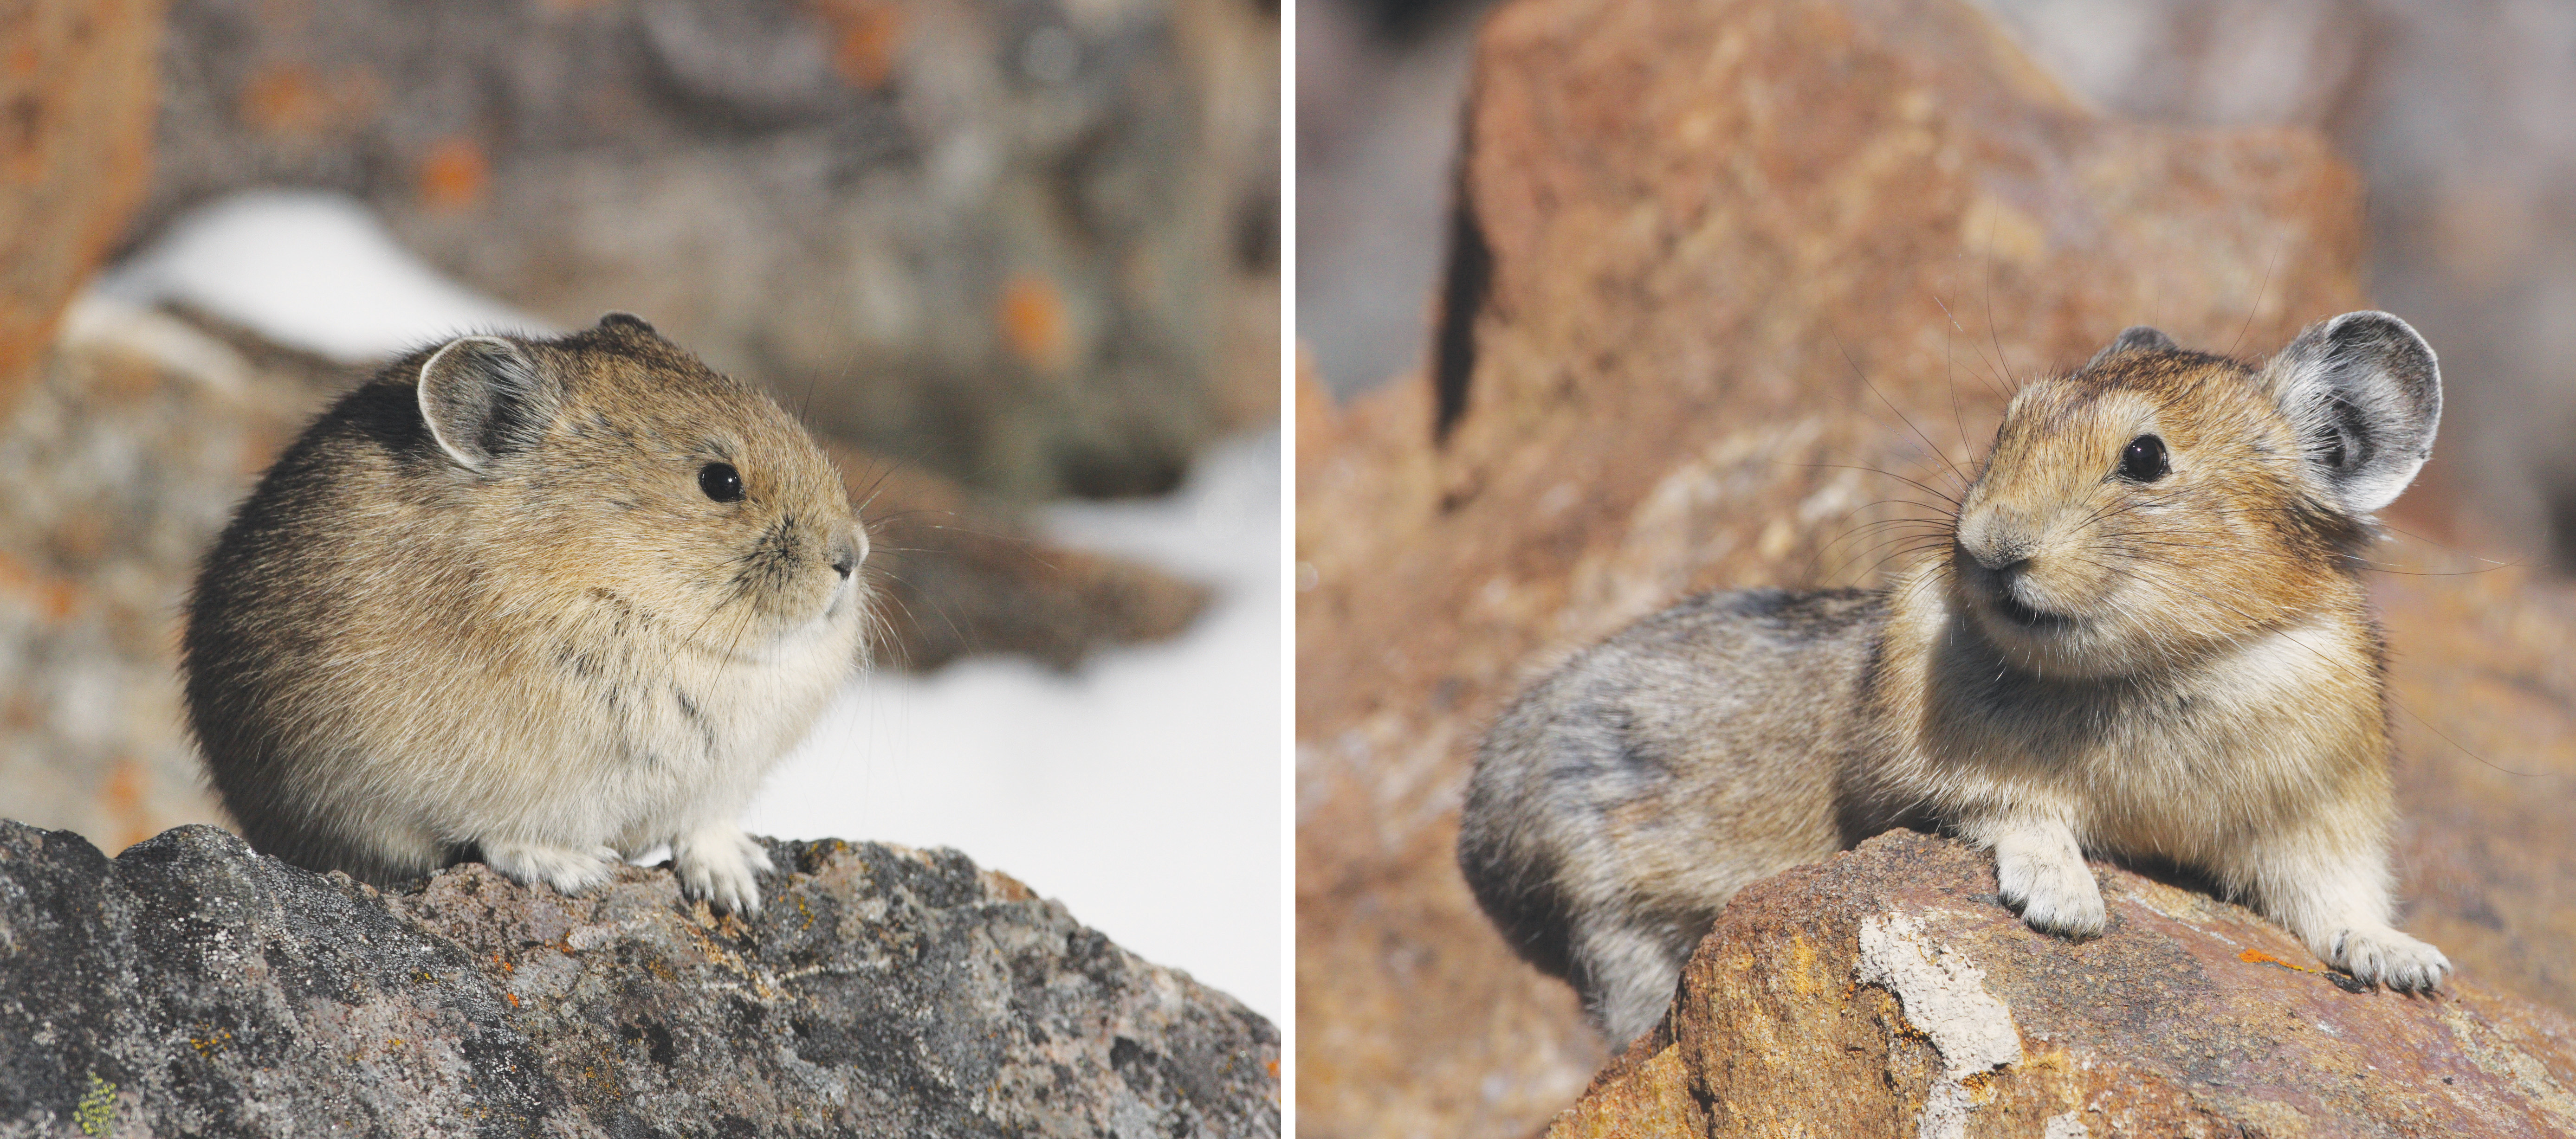 Puff and lounge thermoregulation. American pikas can their moderate body temperature through posture (to some degree), squeezing into a fluffy ball, a body posture with minimum surface area, to hold in heat in winter (left), or stretching out the surface area of their bodies to cool down in summer (right). In recent years, pikas have been observed modifying their foraging habits in ways that may be behavioral adaptations to a changing climate.  Credit, J. Jacobson, from figure 4 of EA Beever et al (2017) Front Ecol Environ doi: 10.1002/fee.1502.